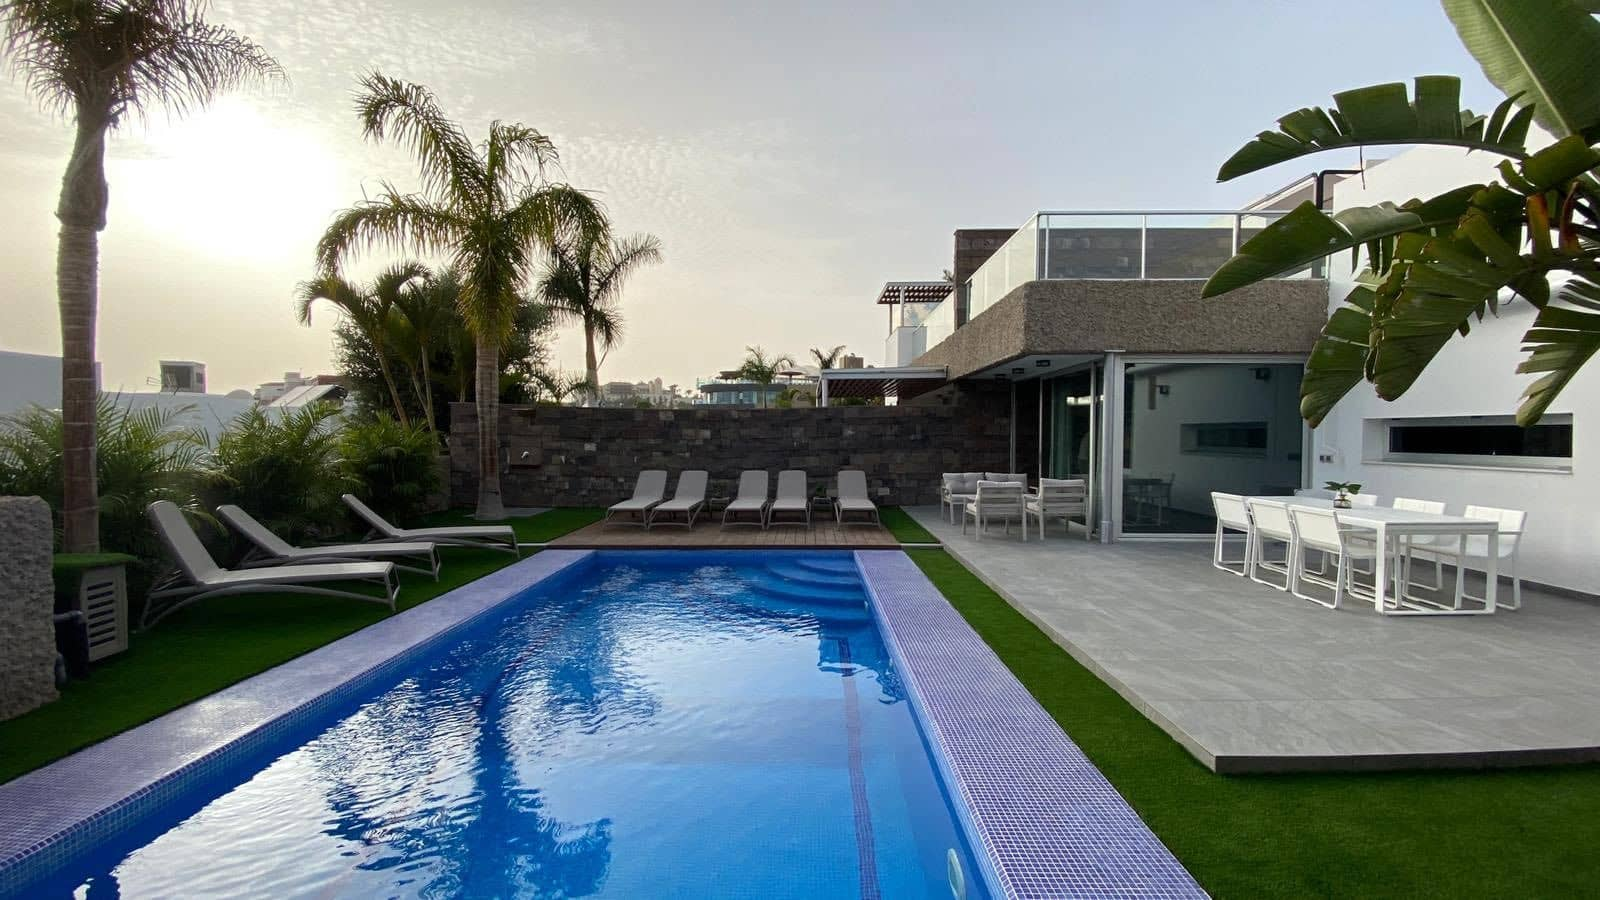 6 bedroom Villa for holiday rental in Costa Adeje with pool garage - € 2,700 (Ref: 5329191)